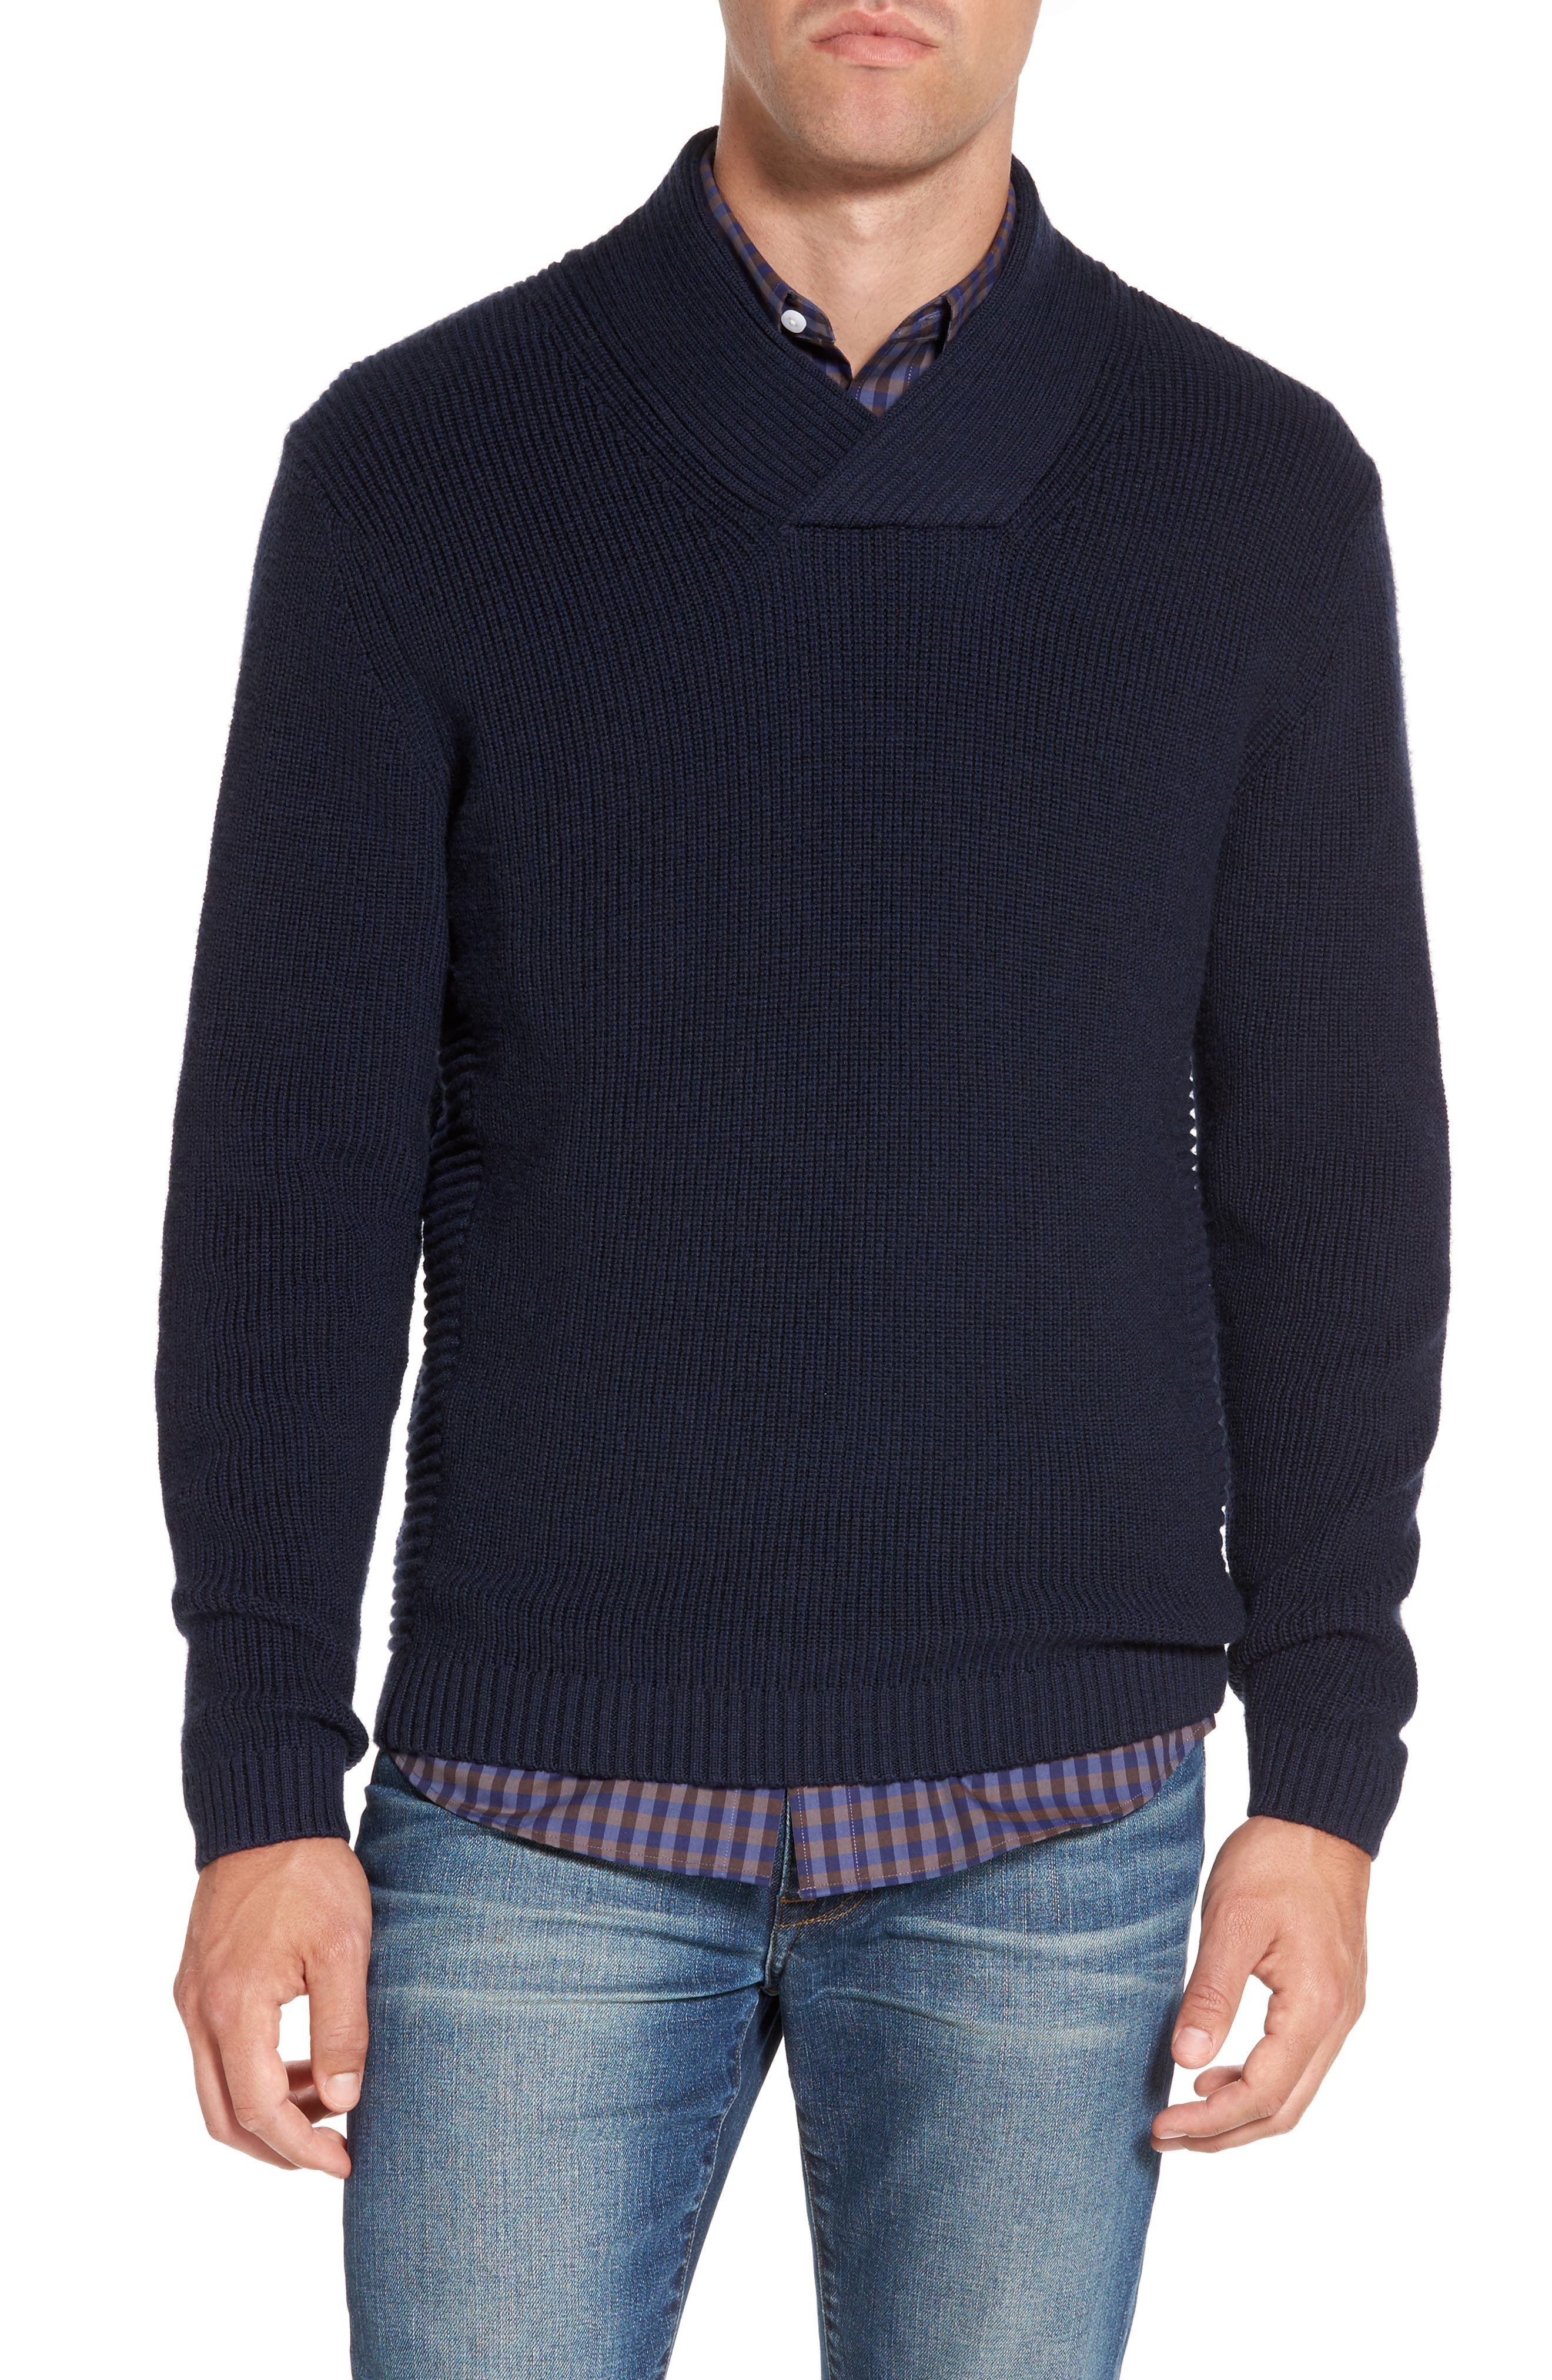 Charlesworth Suede Patch Merino Wool Sweater,                             Main thumbnail 1, color,                             Marine